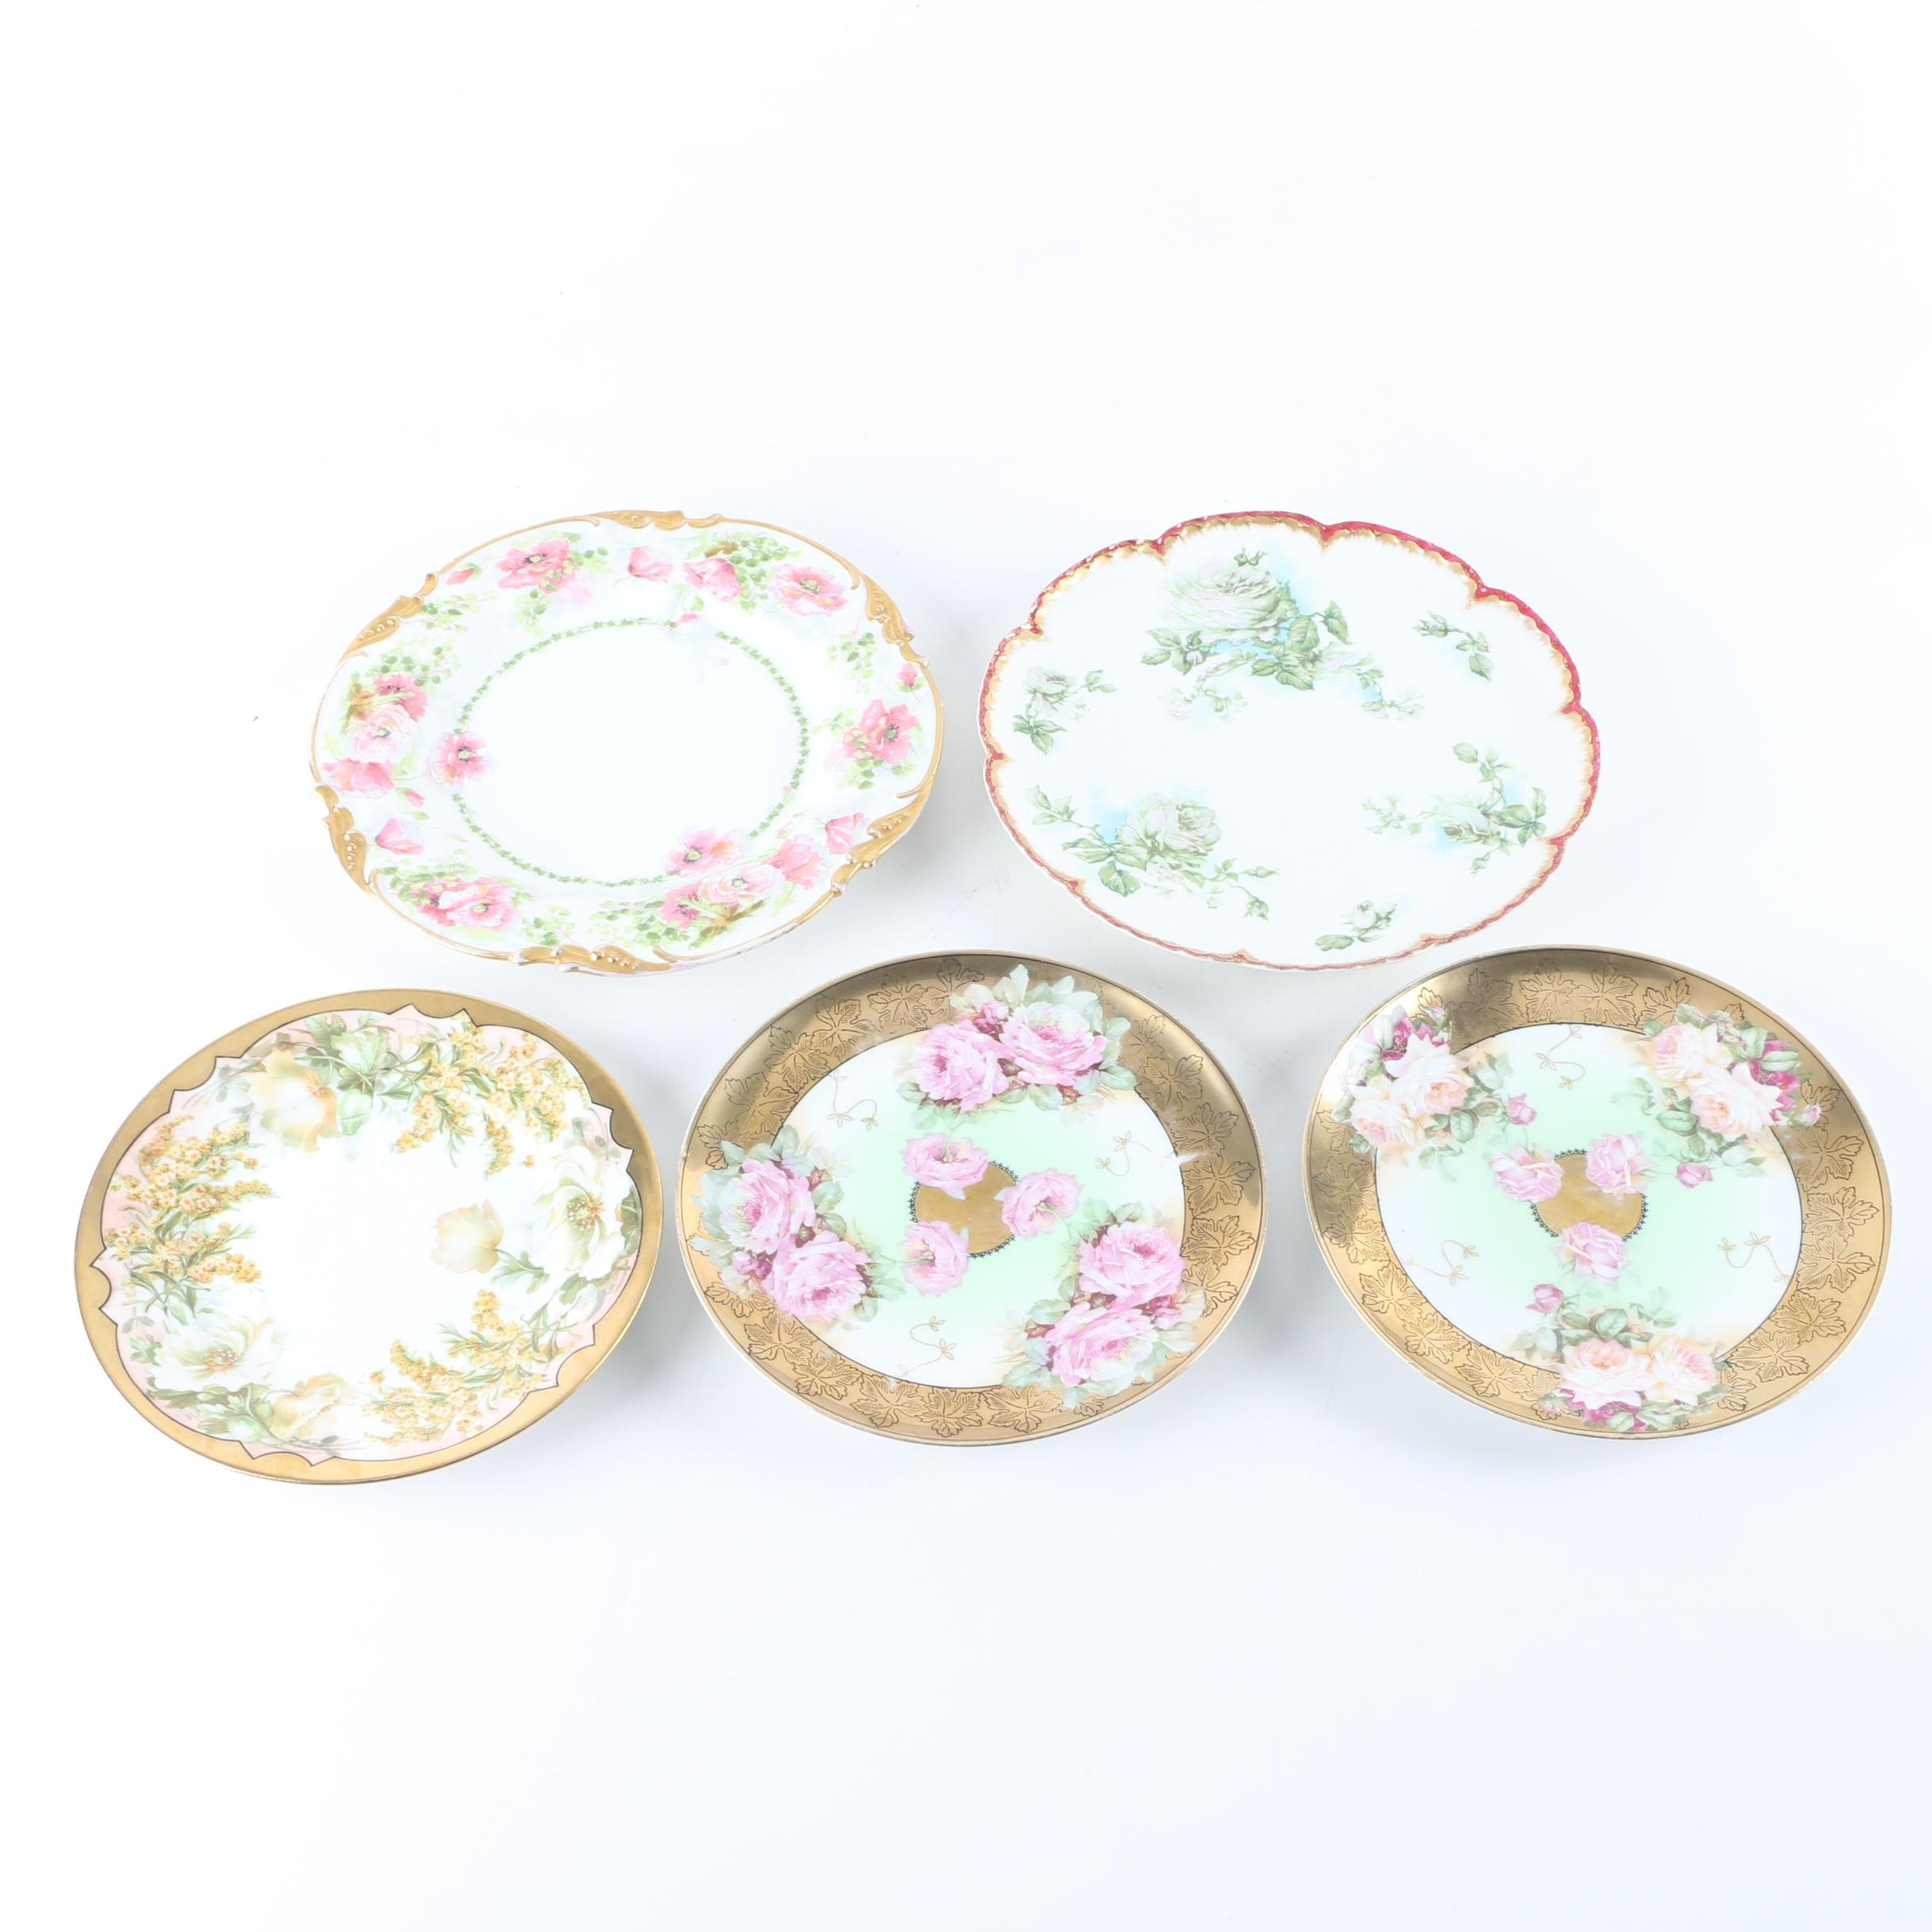 Collection of China Plates Including Limoges